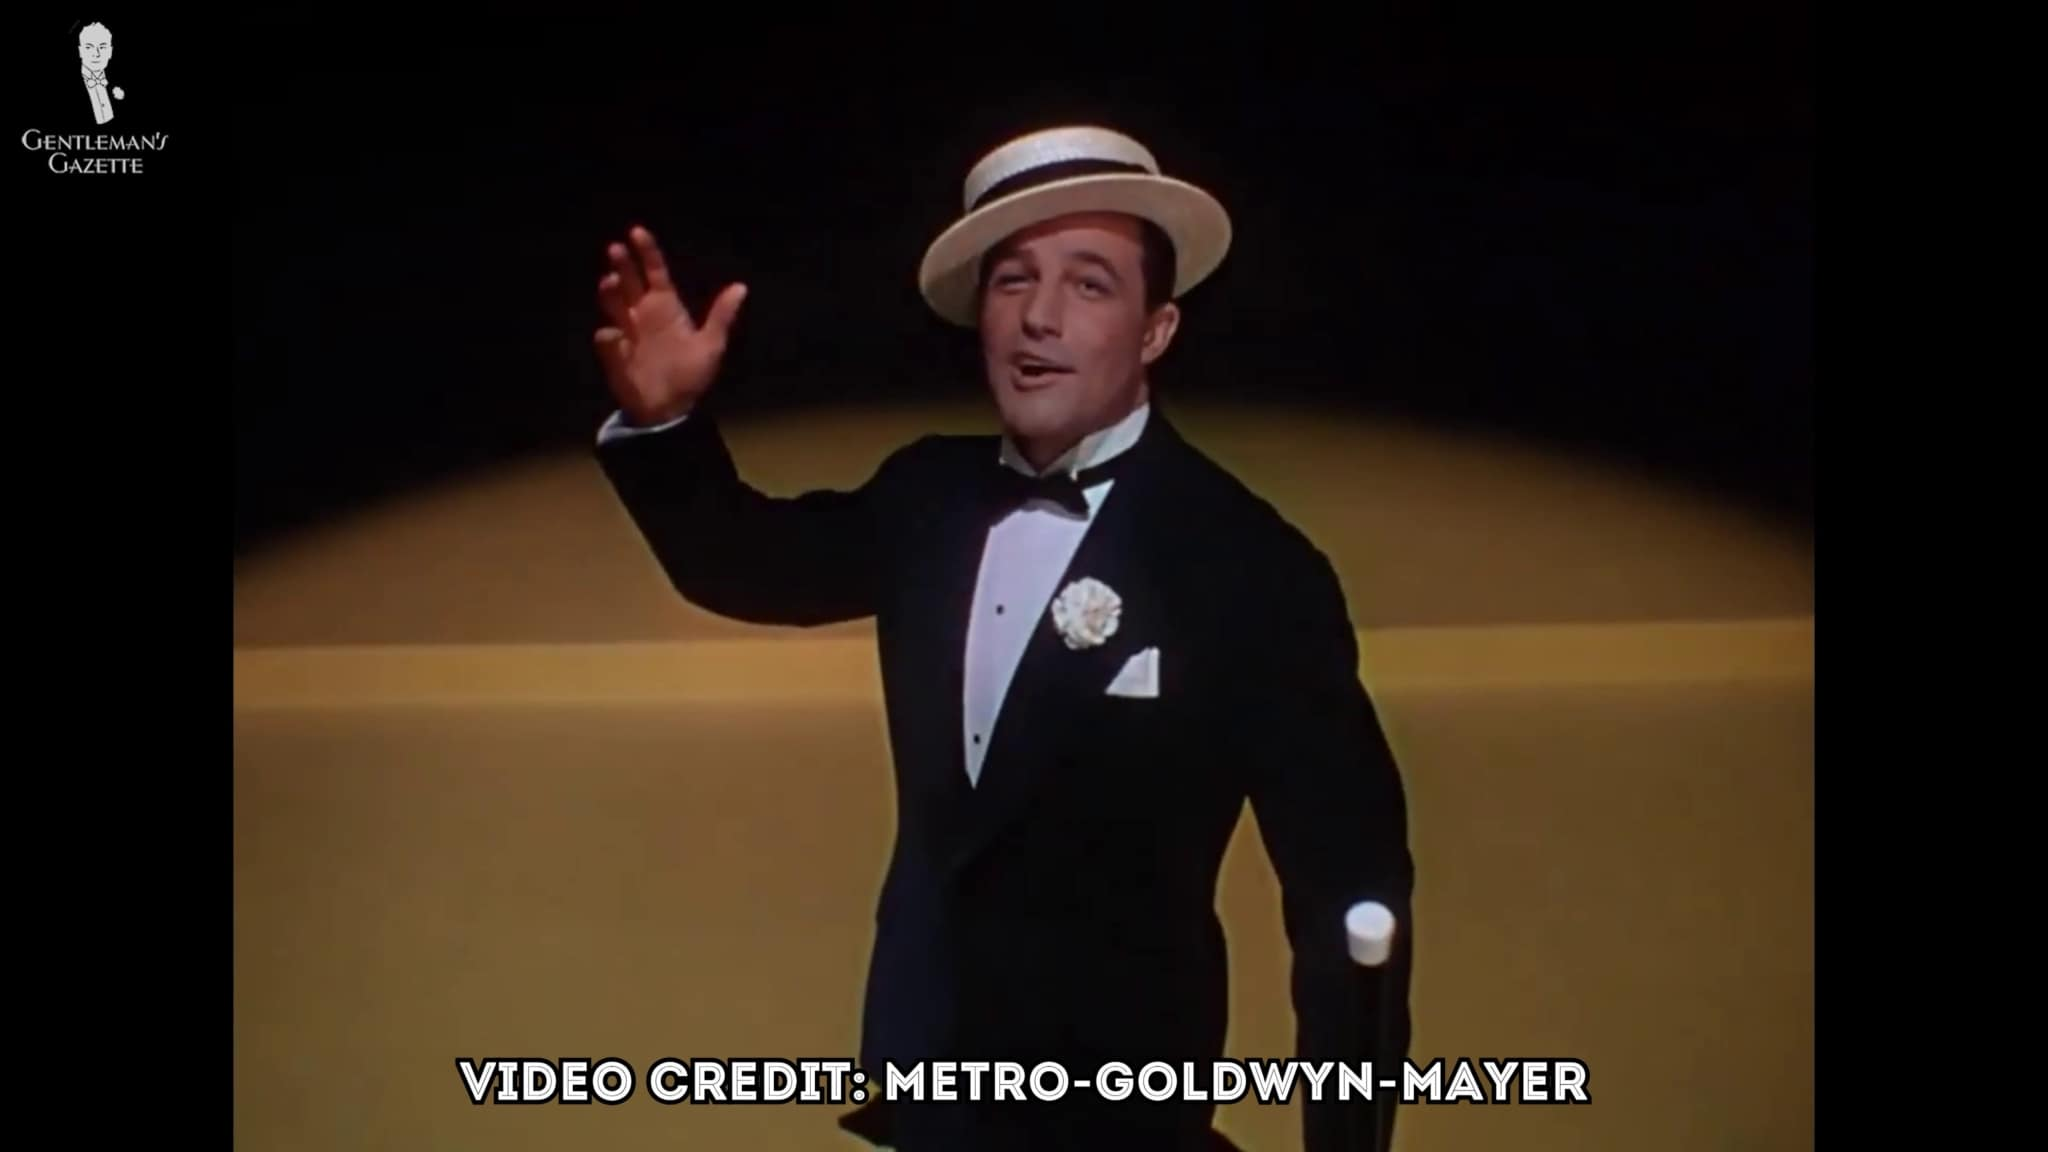 Gene Kelly in his Black Tie Ensemble